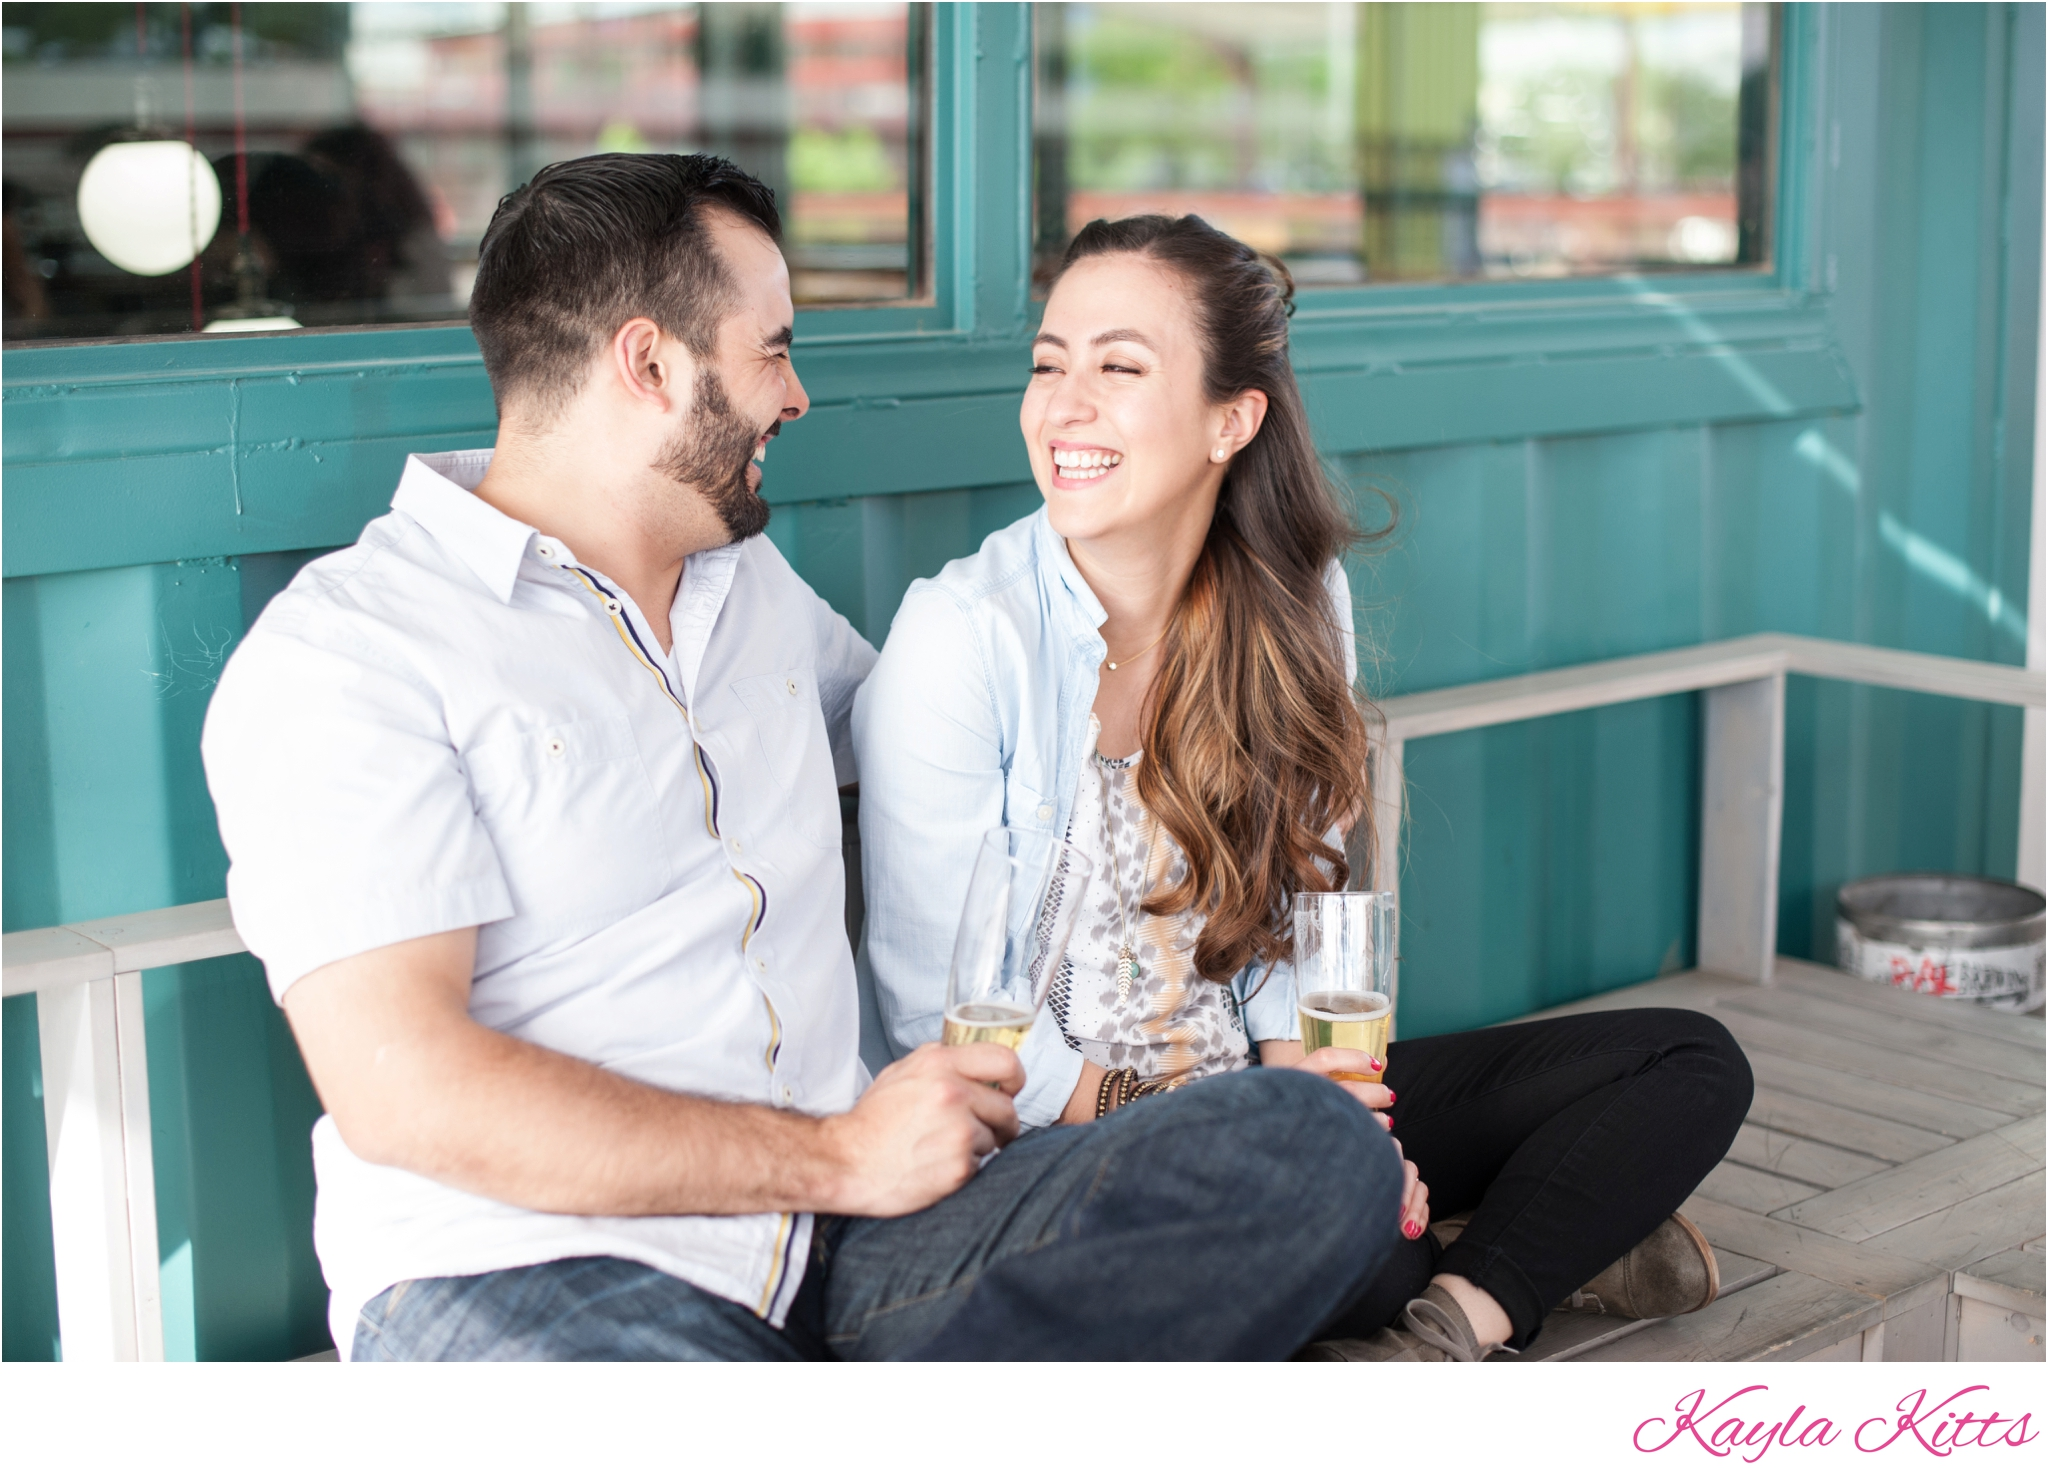 kayla kitts photography - albuquerque wedding photographer - green jeans - brewery engagement session - old town - destination wedding - cabo wedding photographer - santa fe brewery_0006.jpg